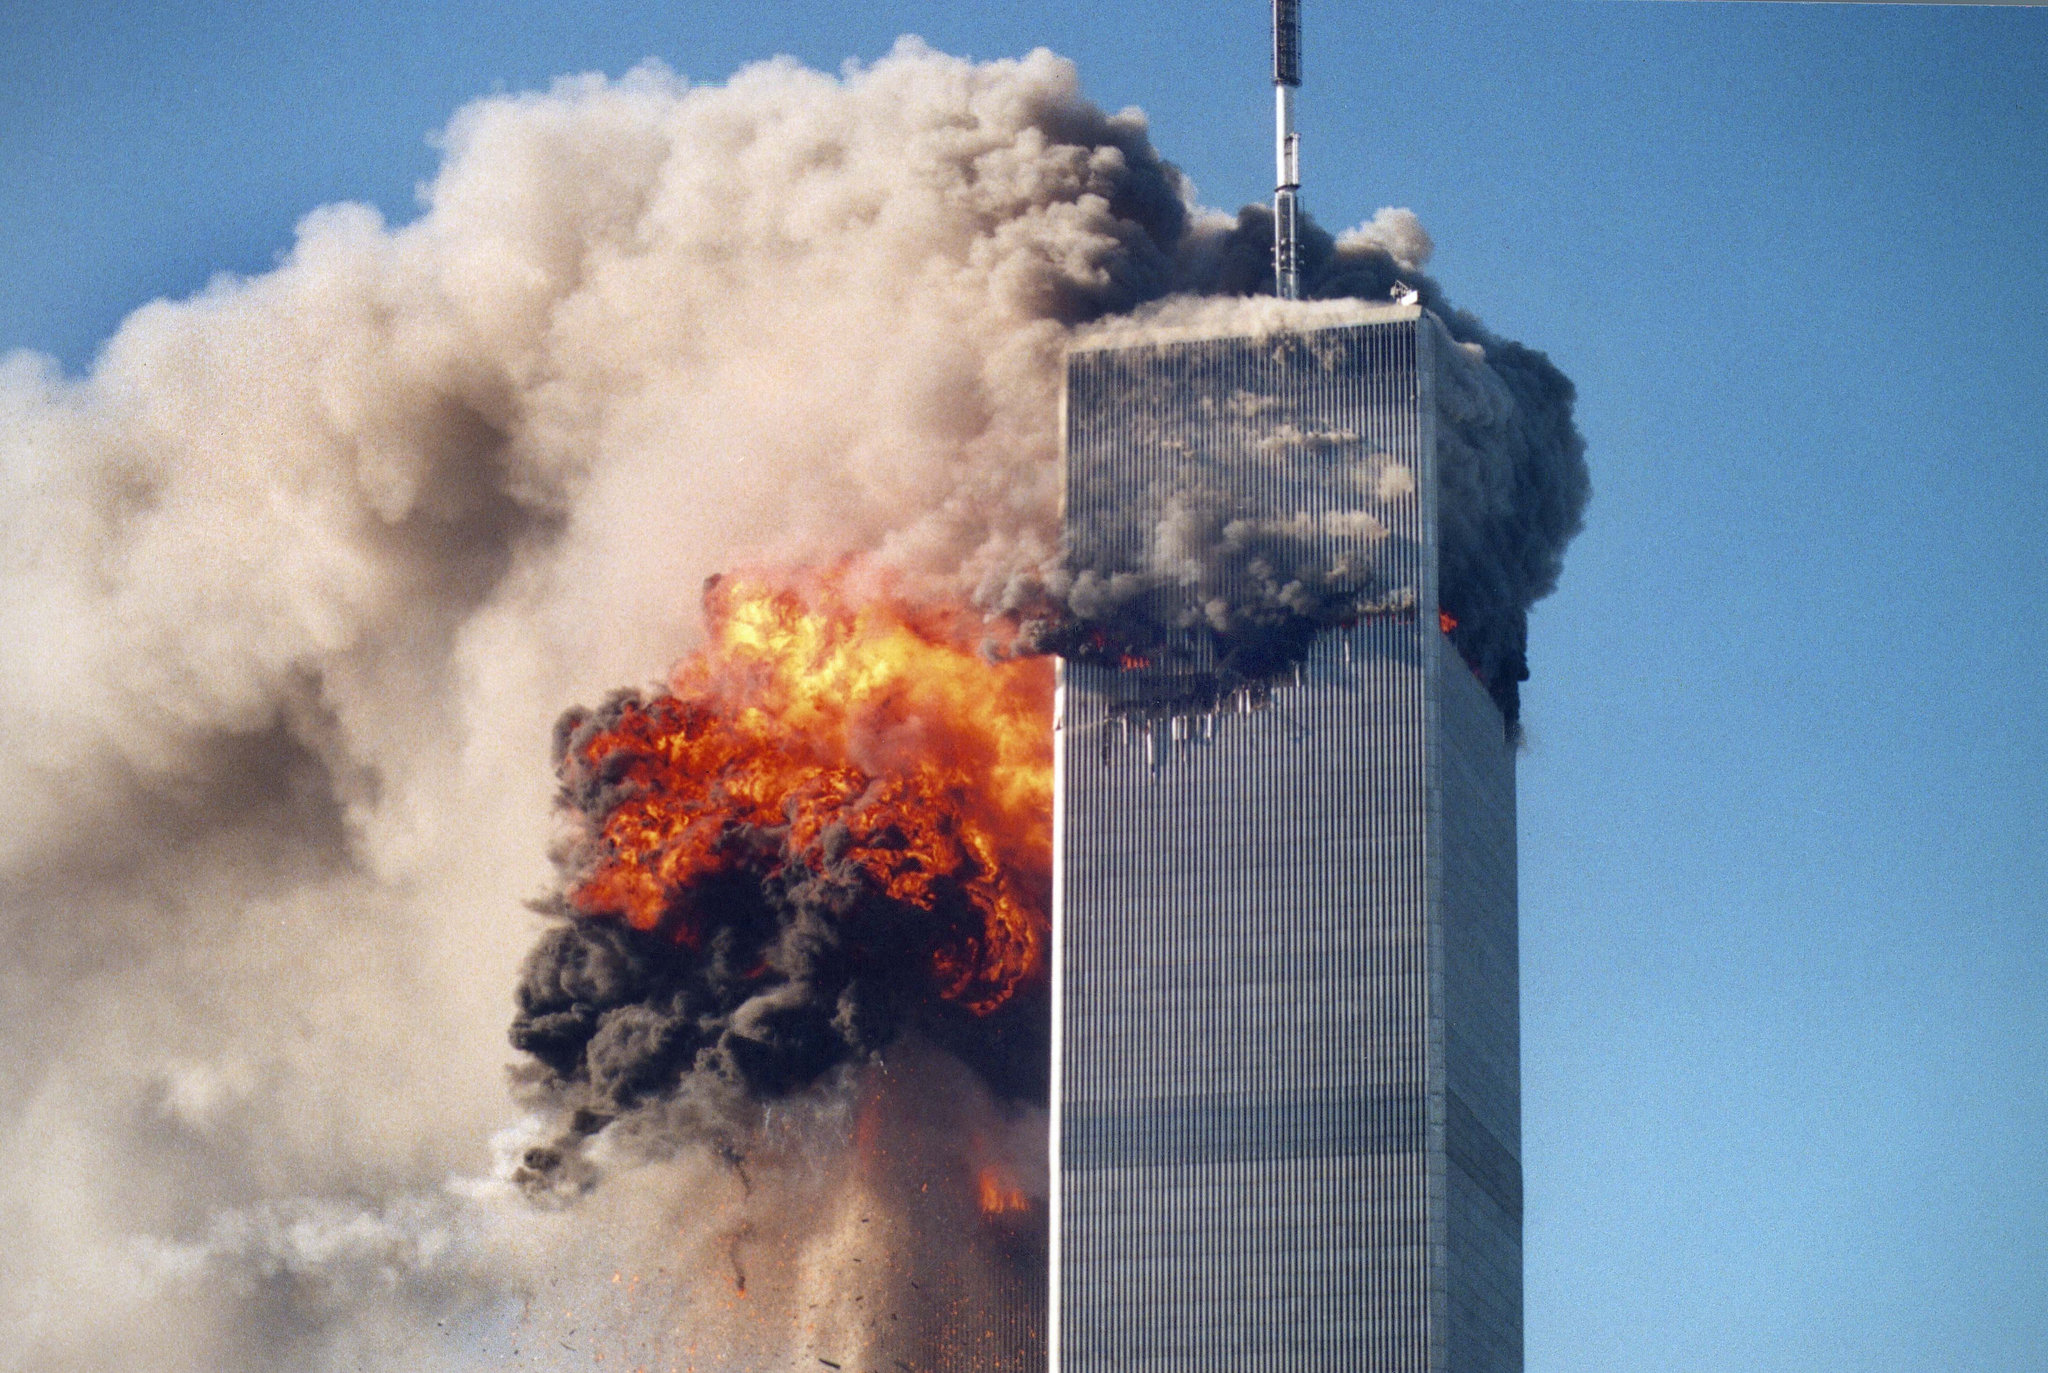 collapse of the twin towers essay 911 south and north tower collapse collapses - duration: 10:01 inside the twin towers - duration: 1:31:49 xxazdesertboyxx 22,556,511 views.